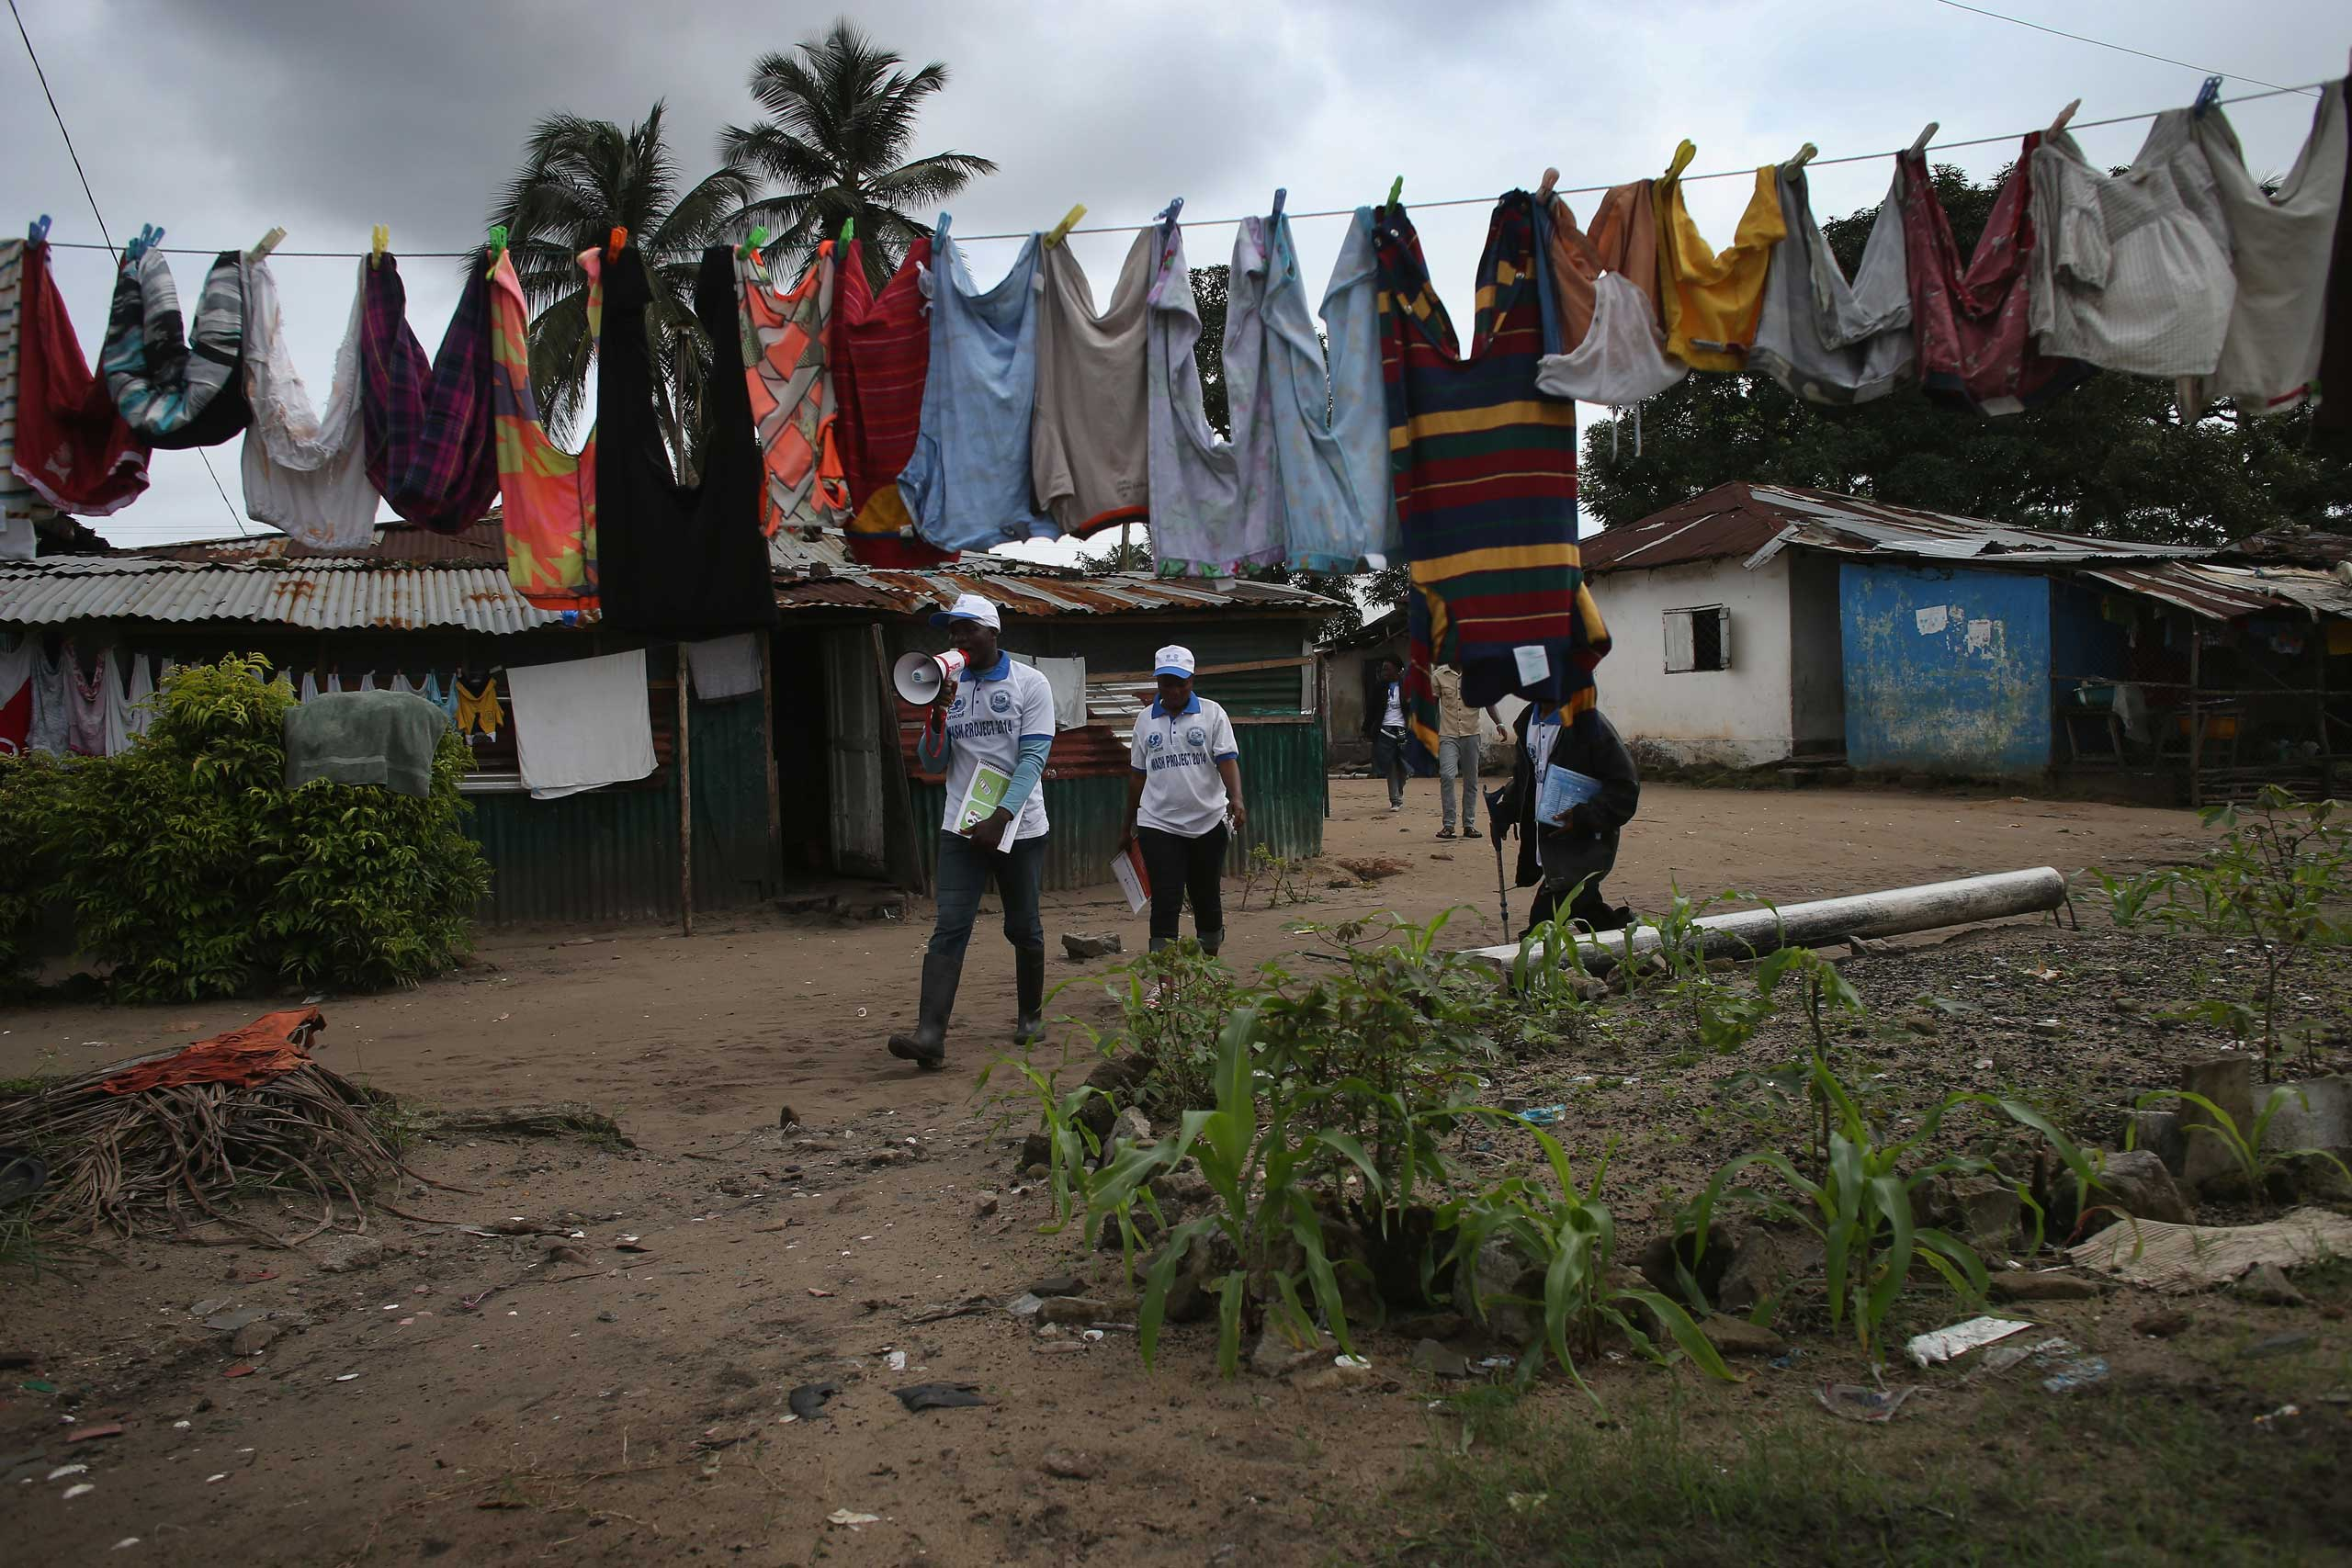 UNICEF health workers walk through the streets, going house to house to speak about Ebola prevention on Aug. 18, 2014 in New Kru Town.